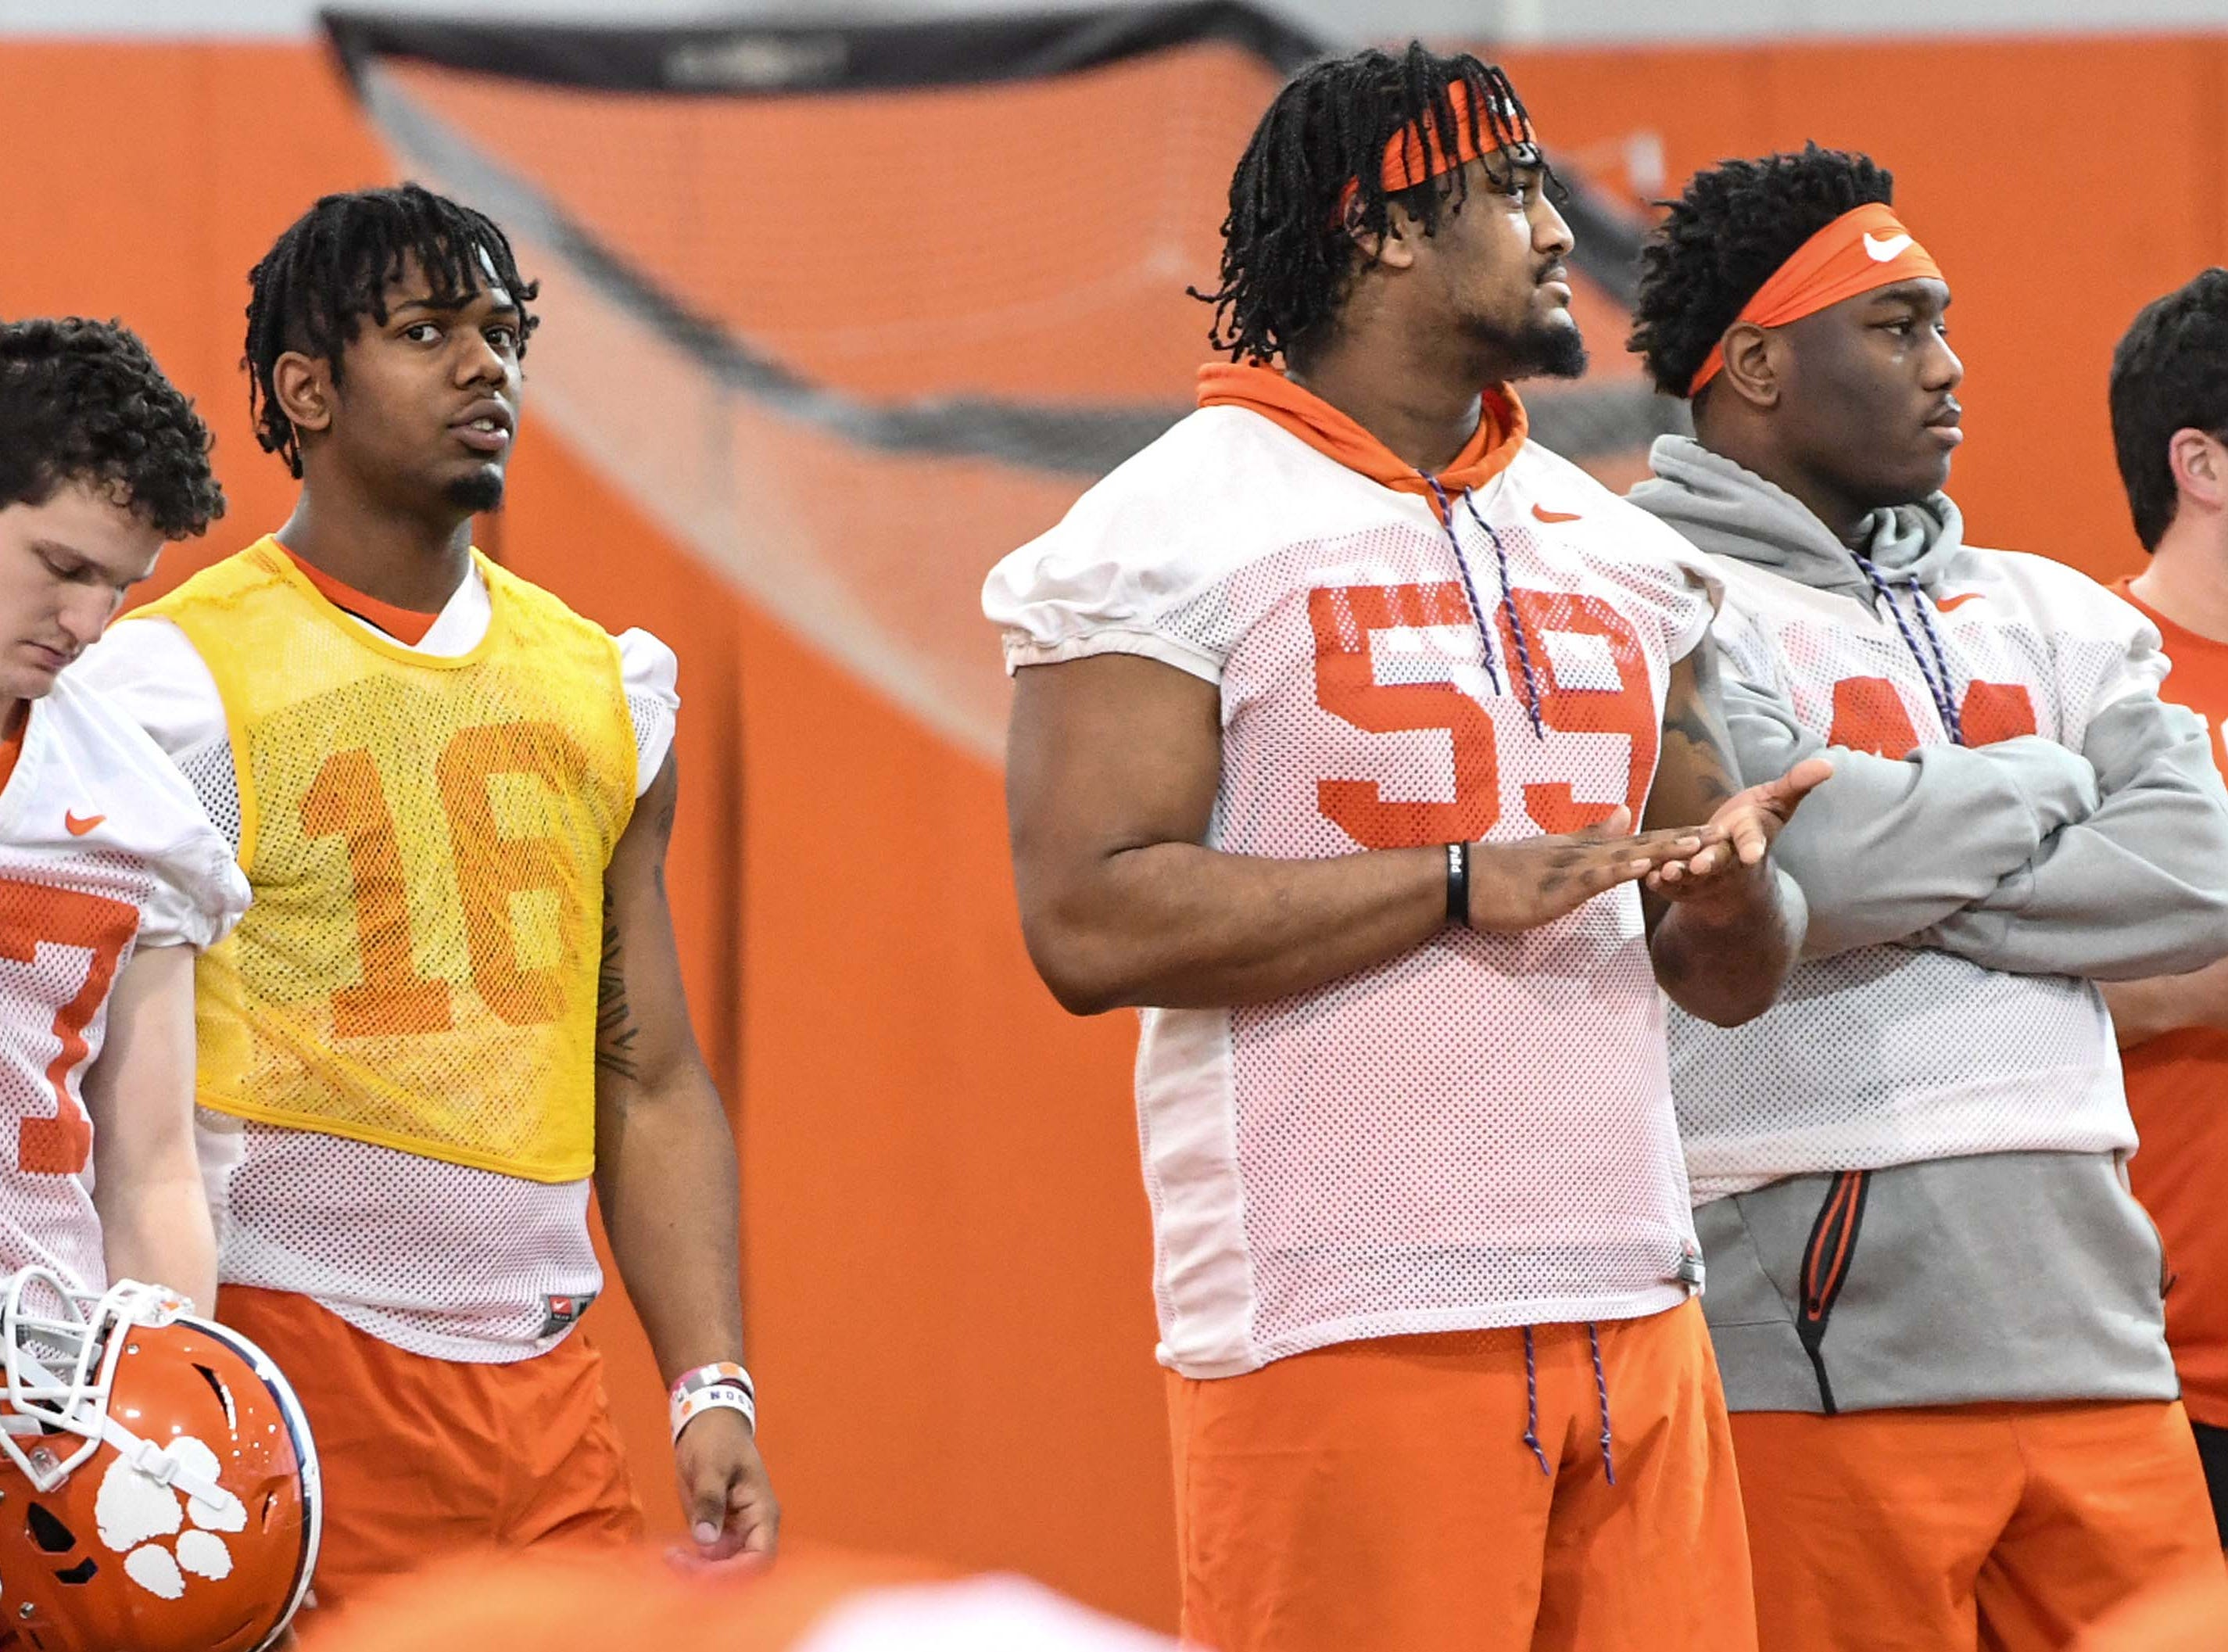 Clemson defensive back Ray Thornton III (16), defensive lineman Jordan Williams (59) and defensive tackle Nyles Pinckney (44) watch practice during the first practice at the Clemson Indoor Practice Facility in Clemson Wednesday, February 27, 2019.